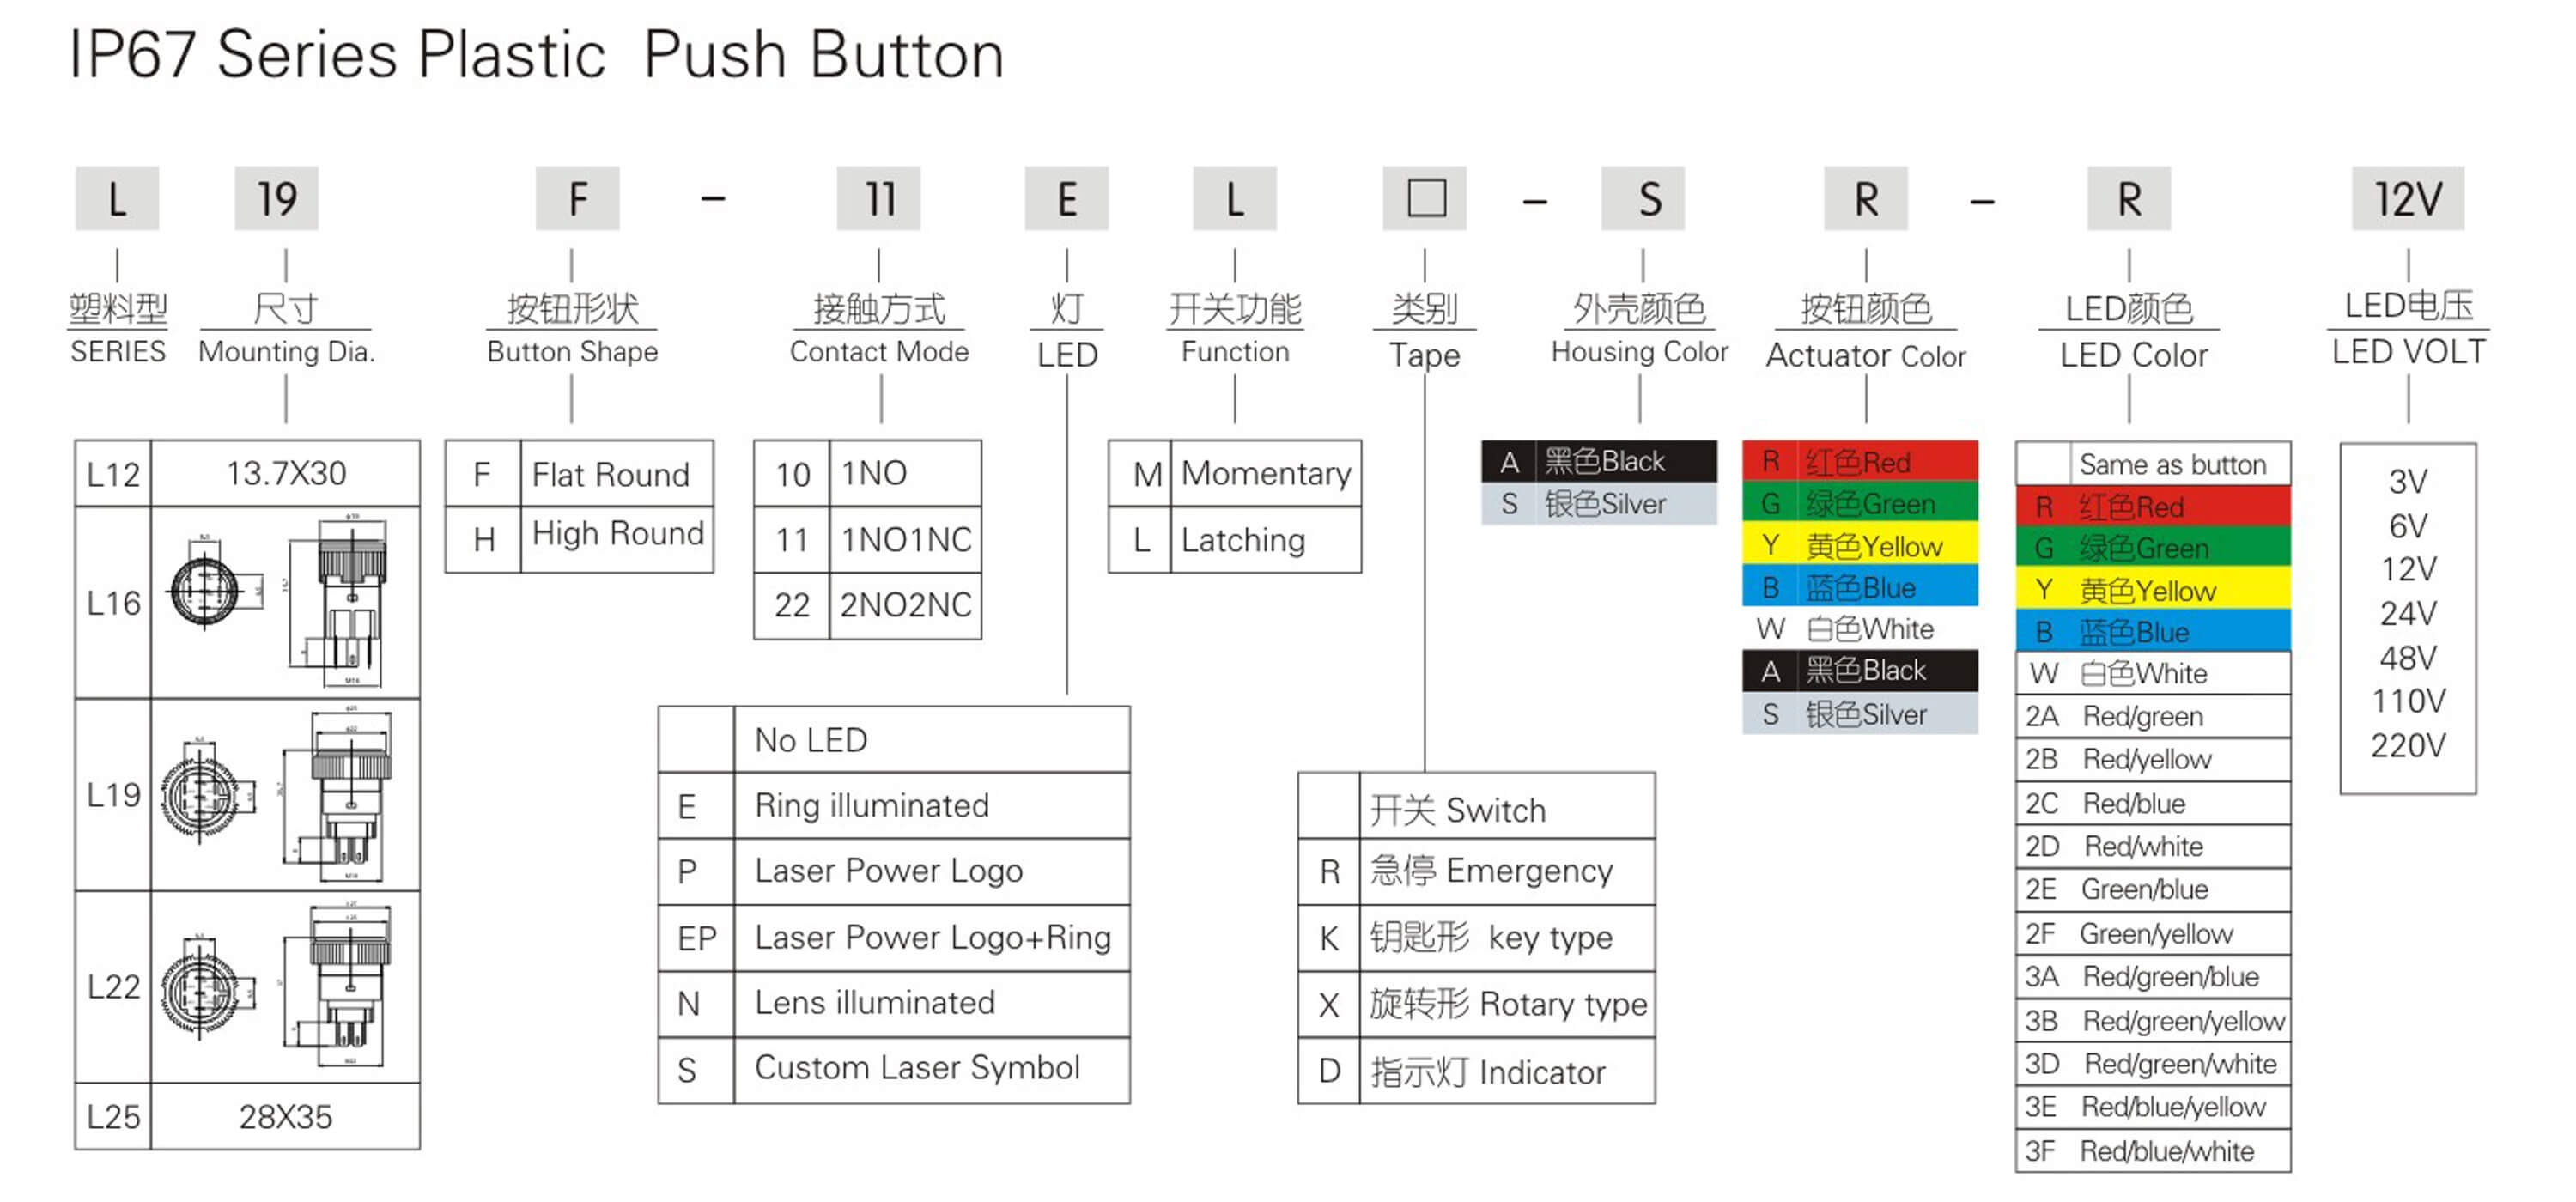 IP67 Series Plastic Push Button